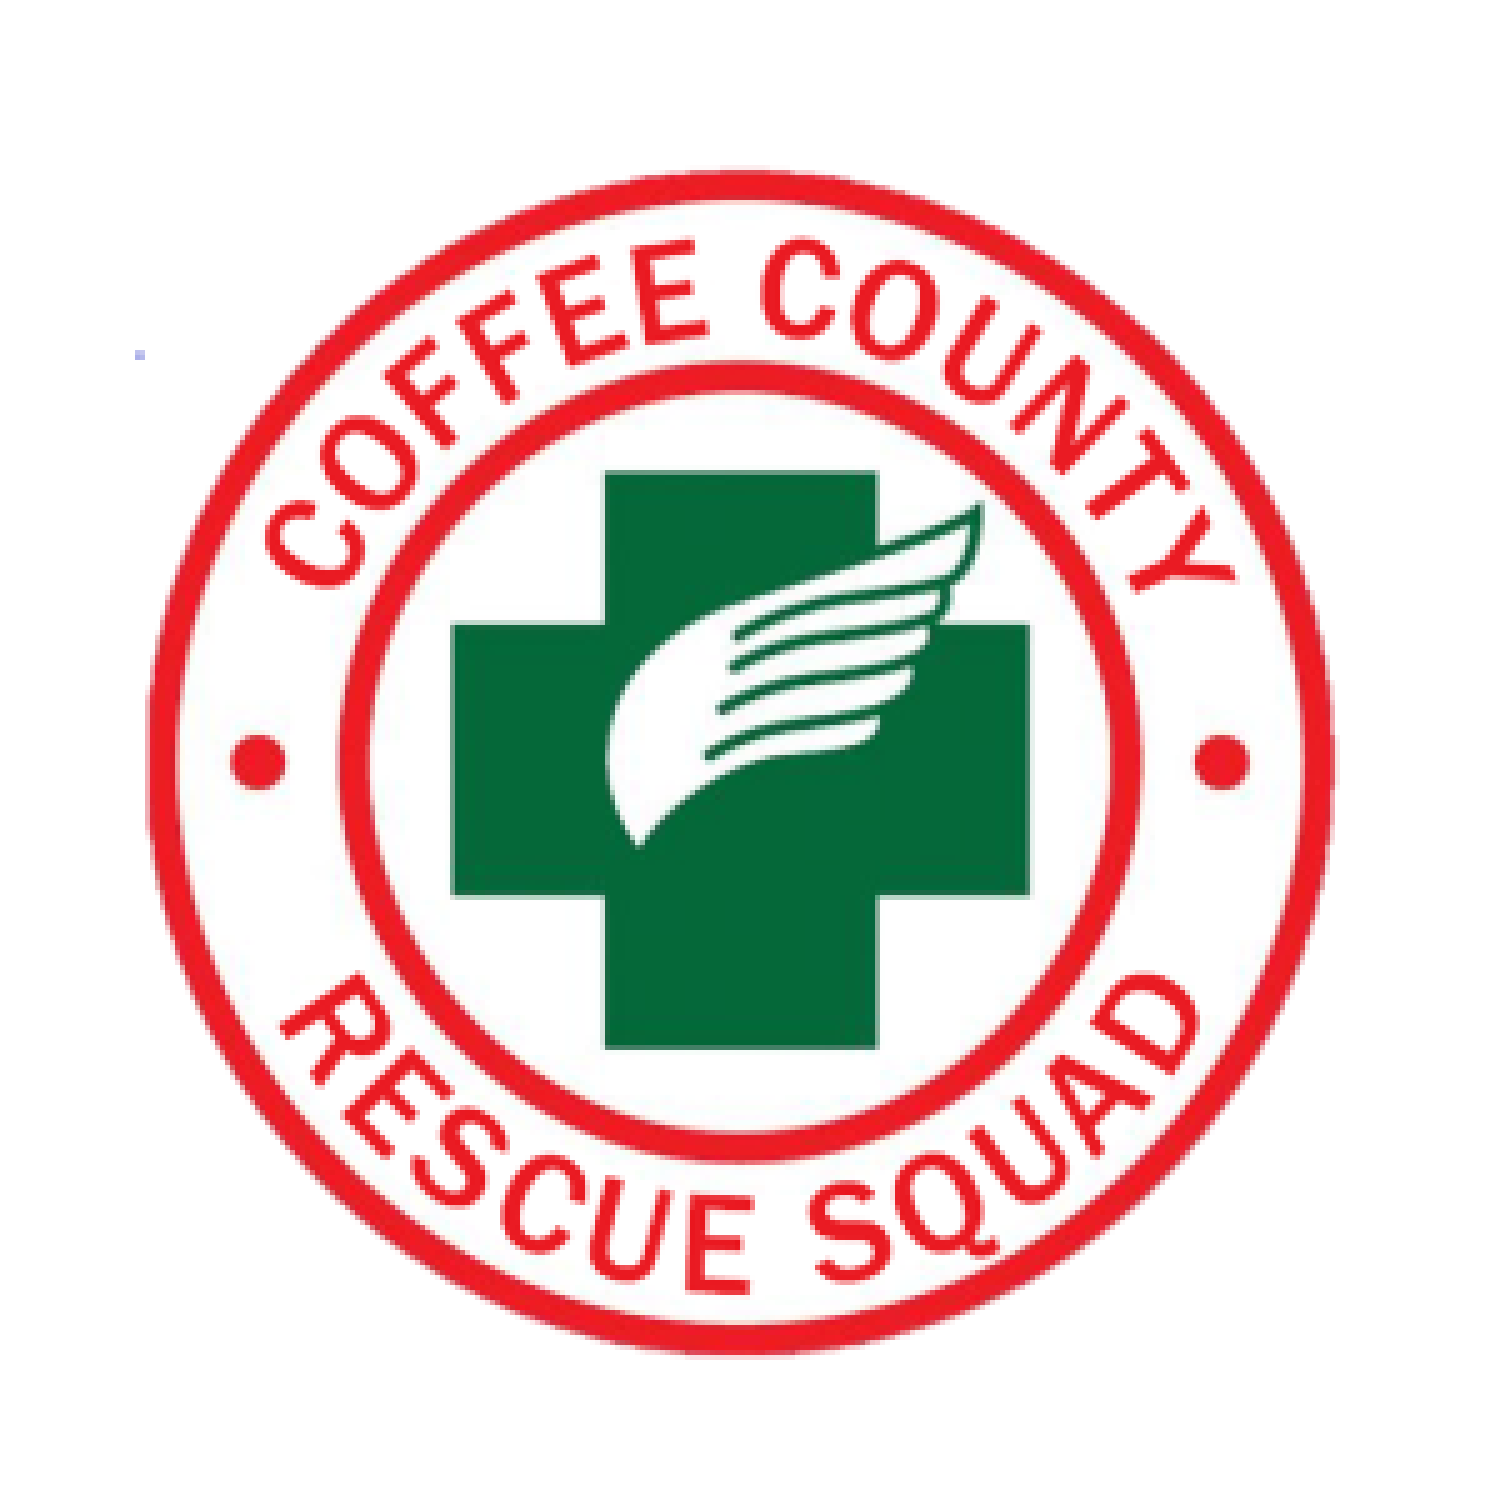 Coffee County Rescue Squad